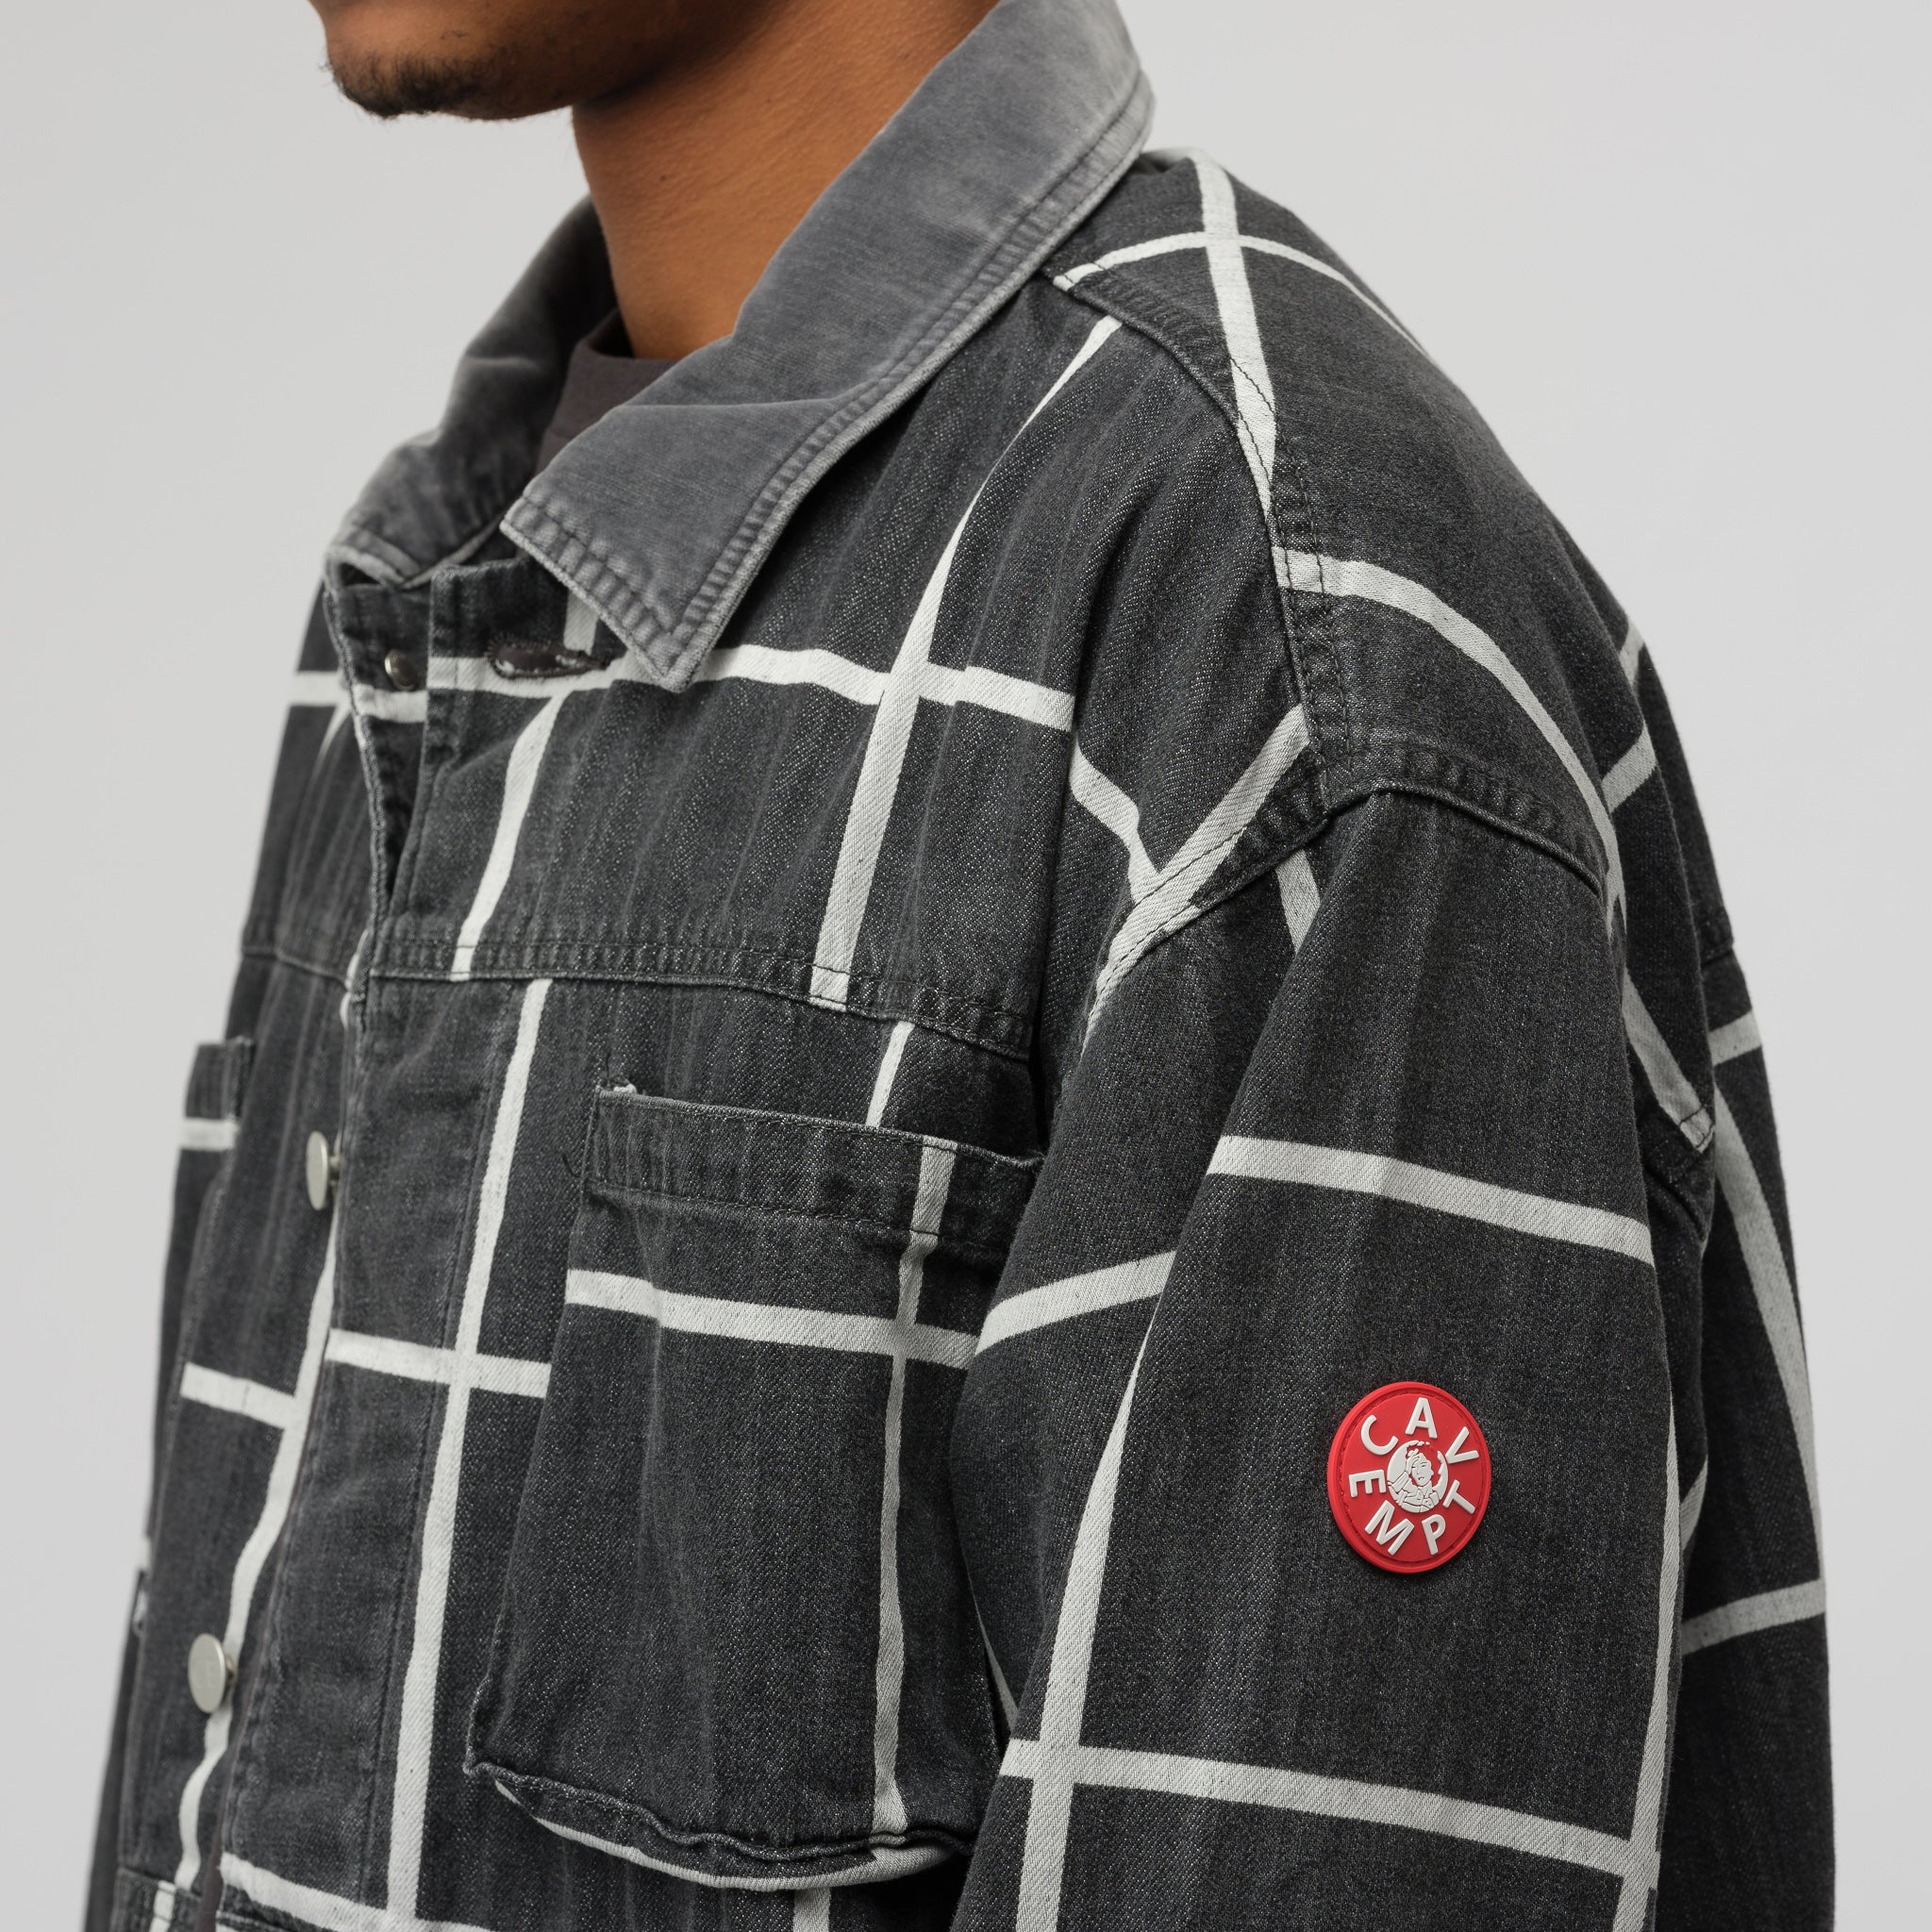 Grid Black Denim Jacket in Black/White